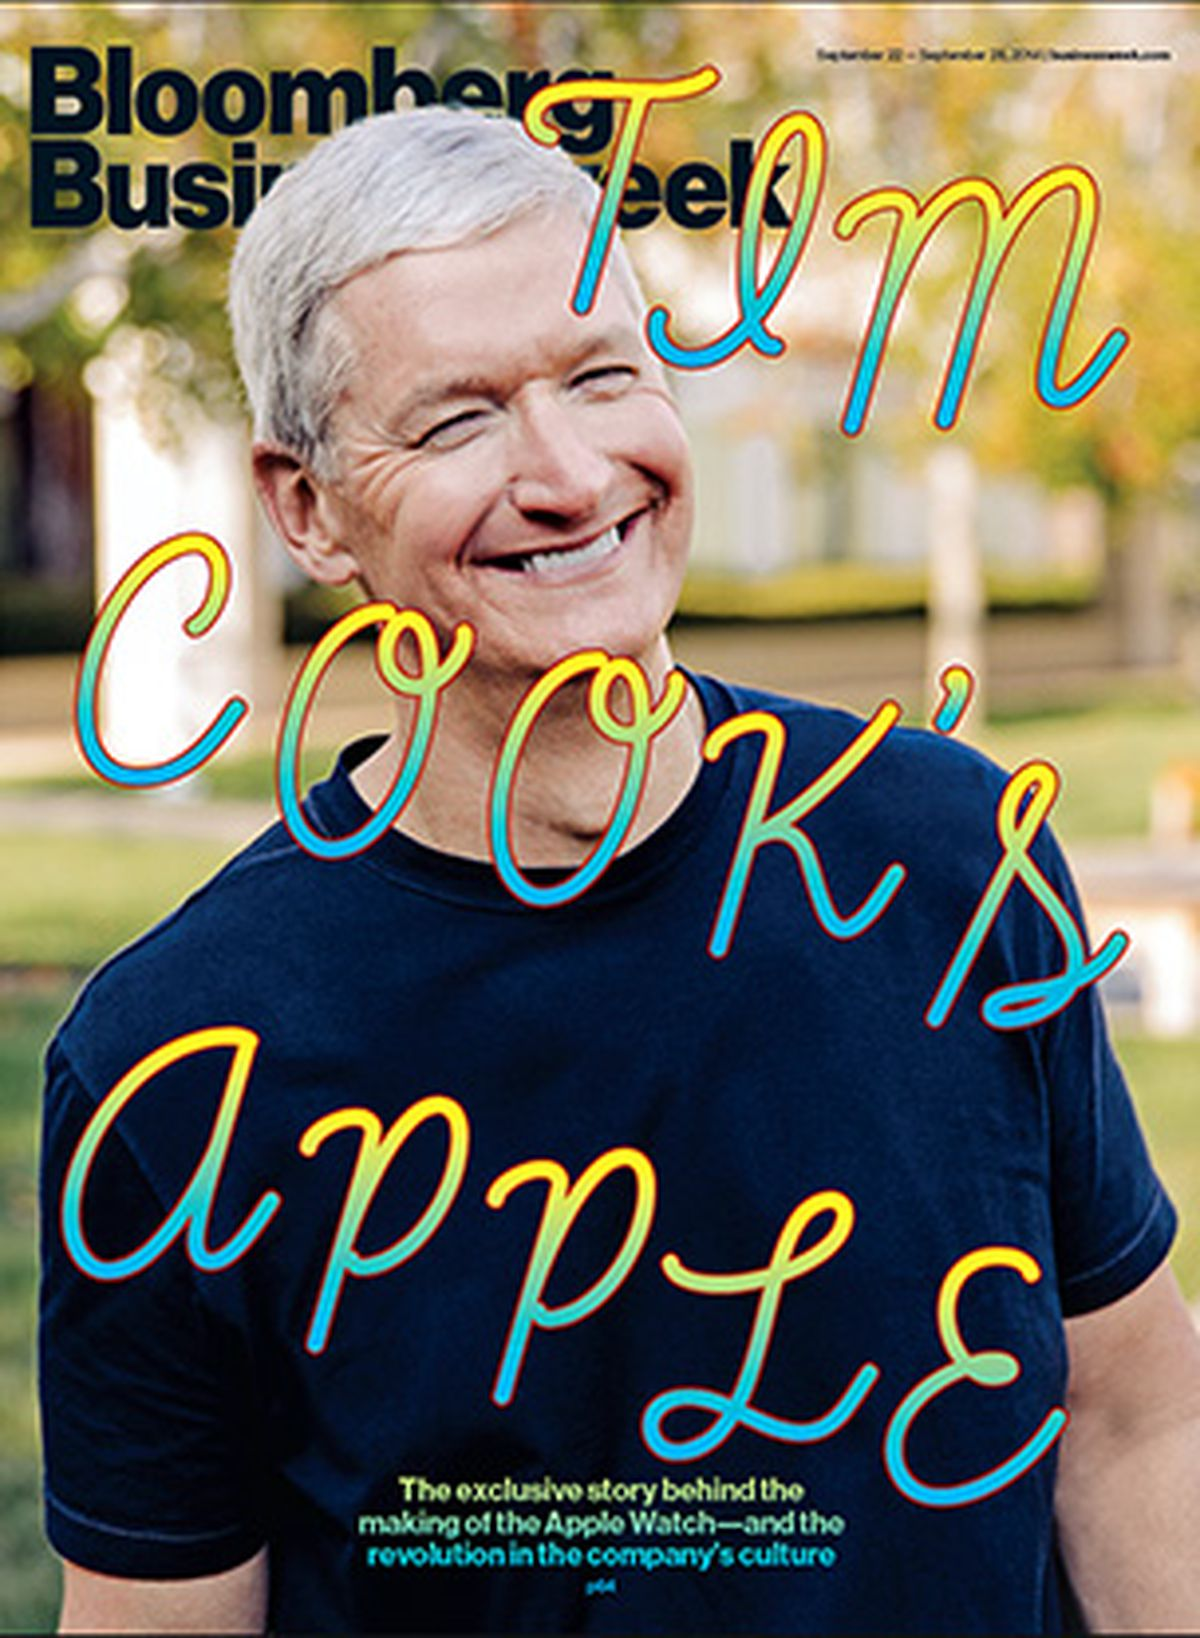 Come Out, Come Out: The Tim Cook Moment Is Here